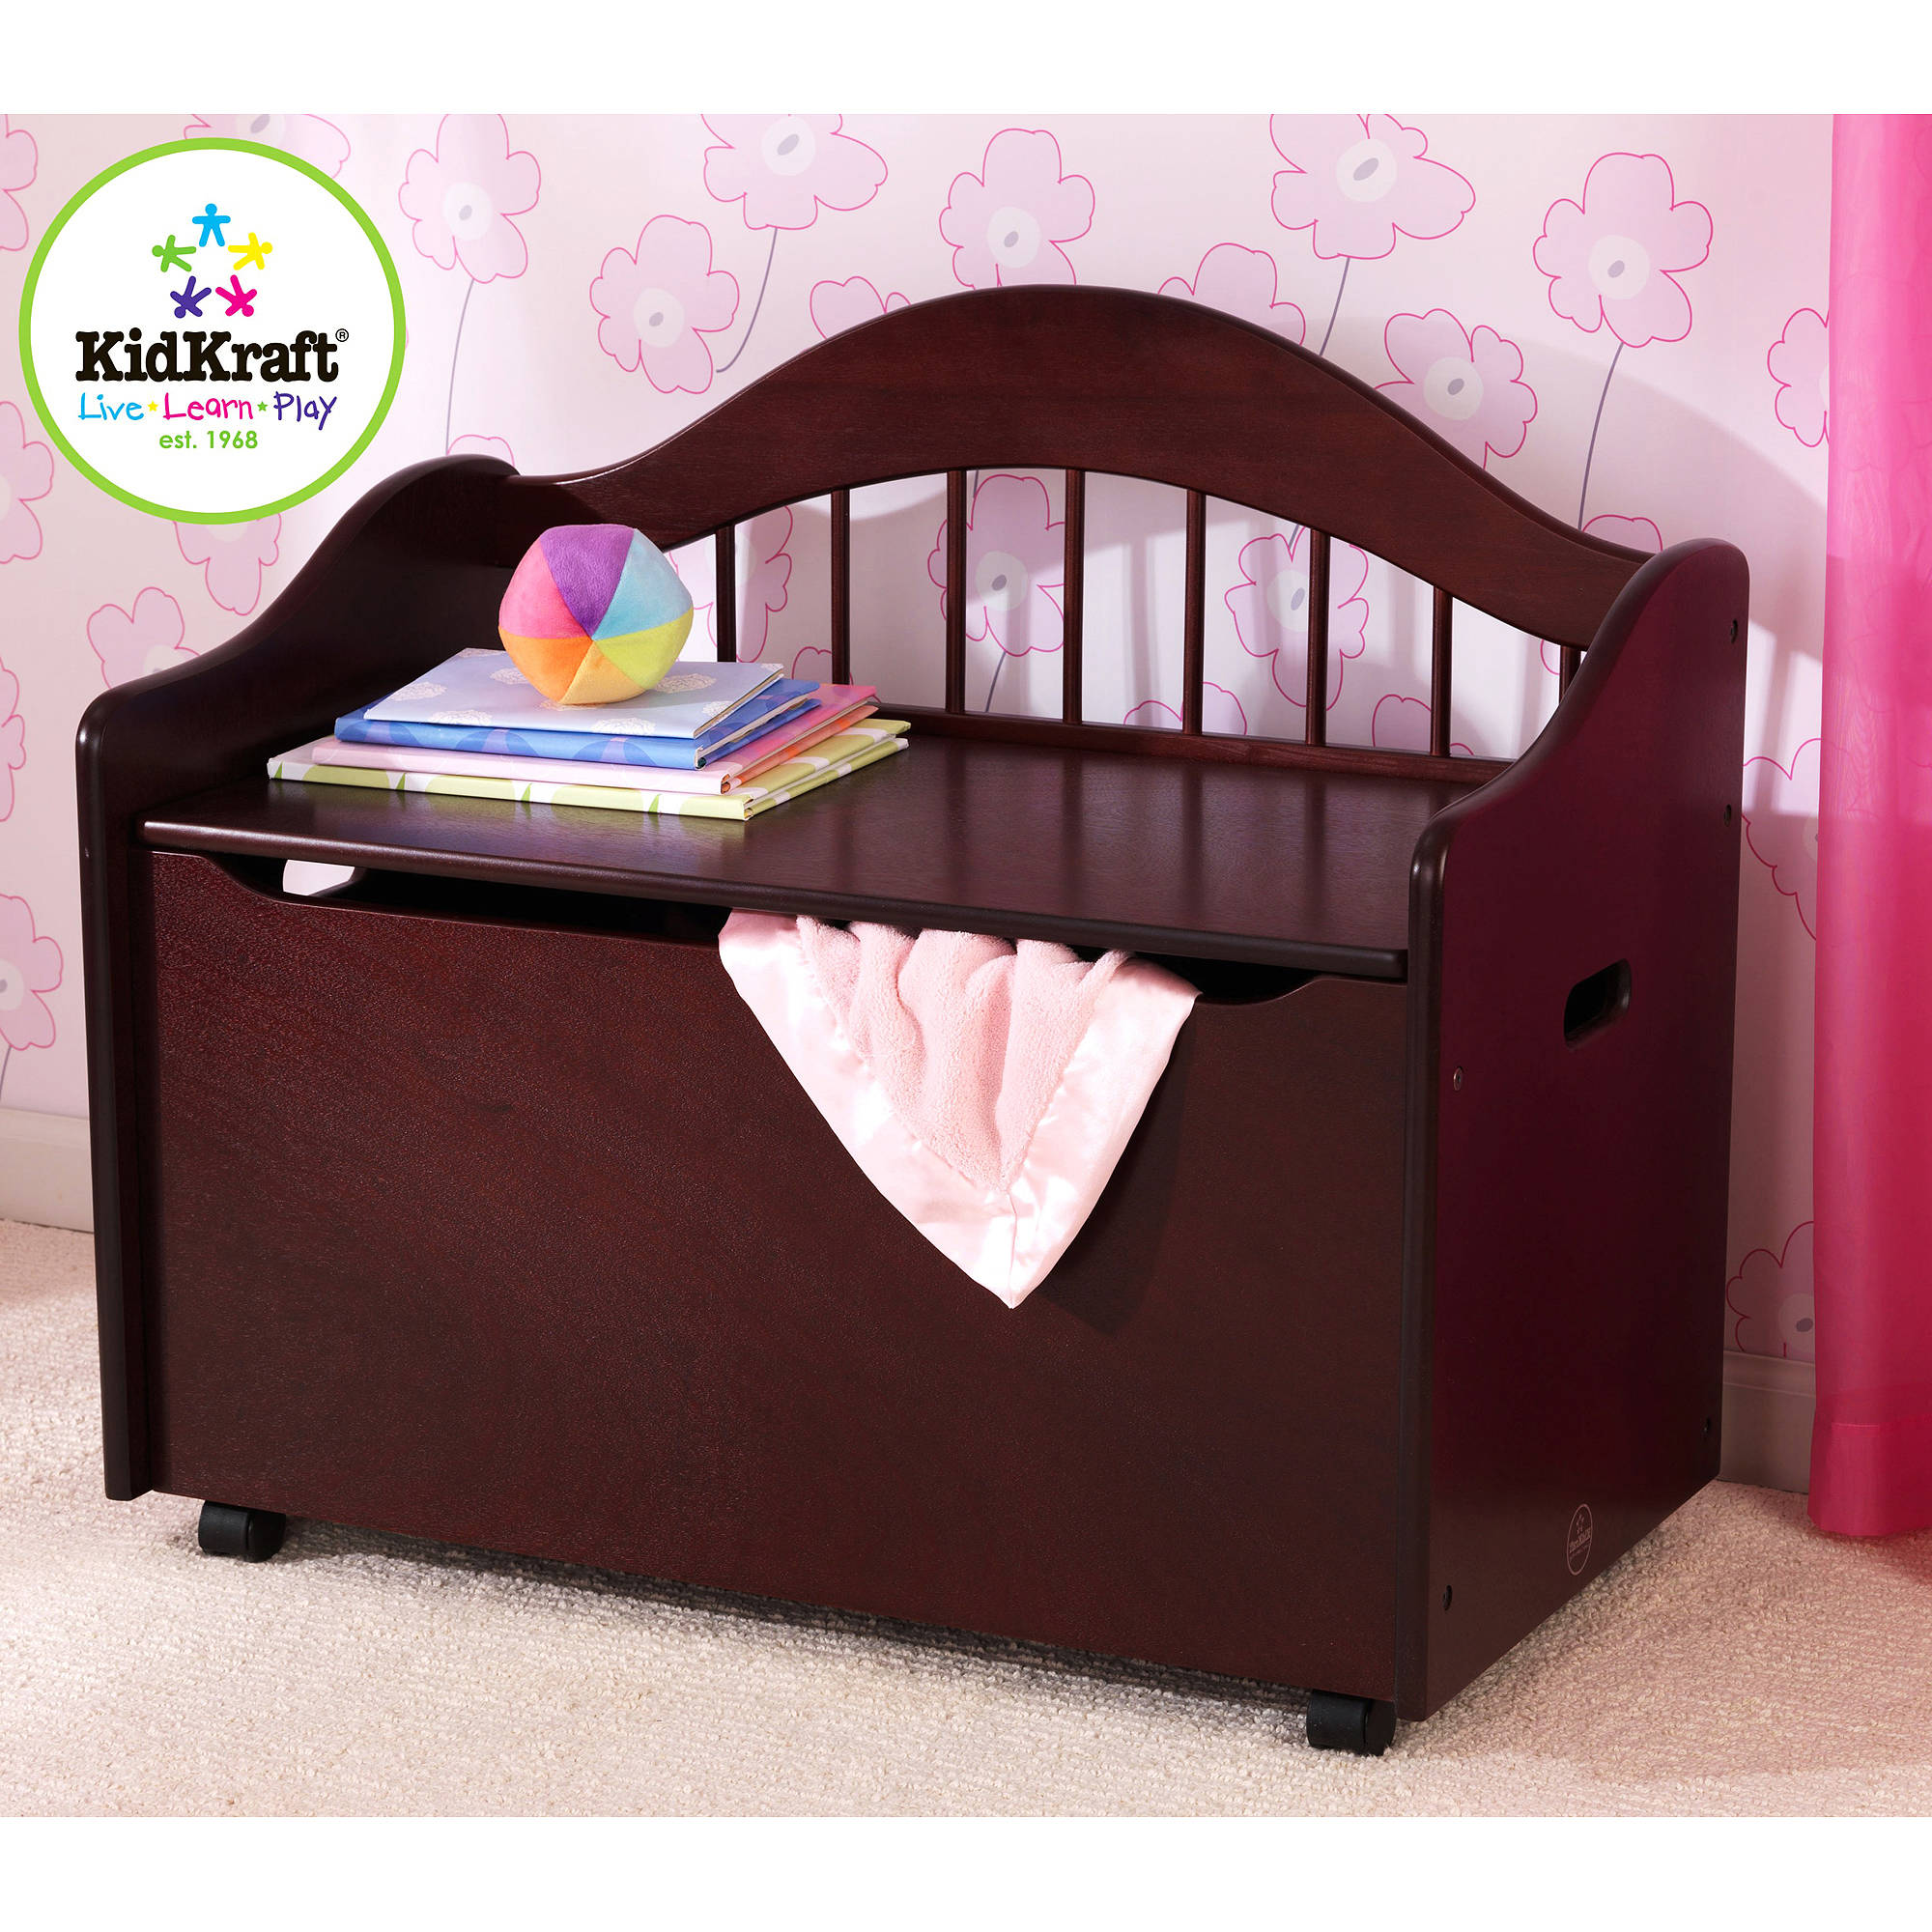 KidKraft - Limited Edition Toy Box, Multiple Colors